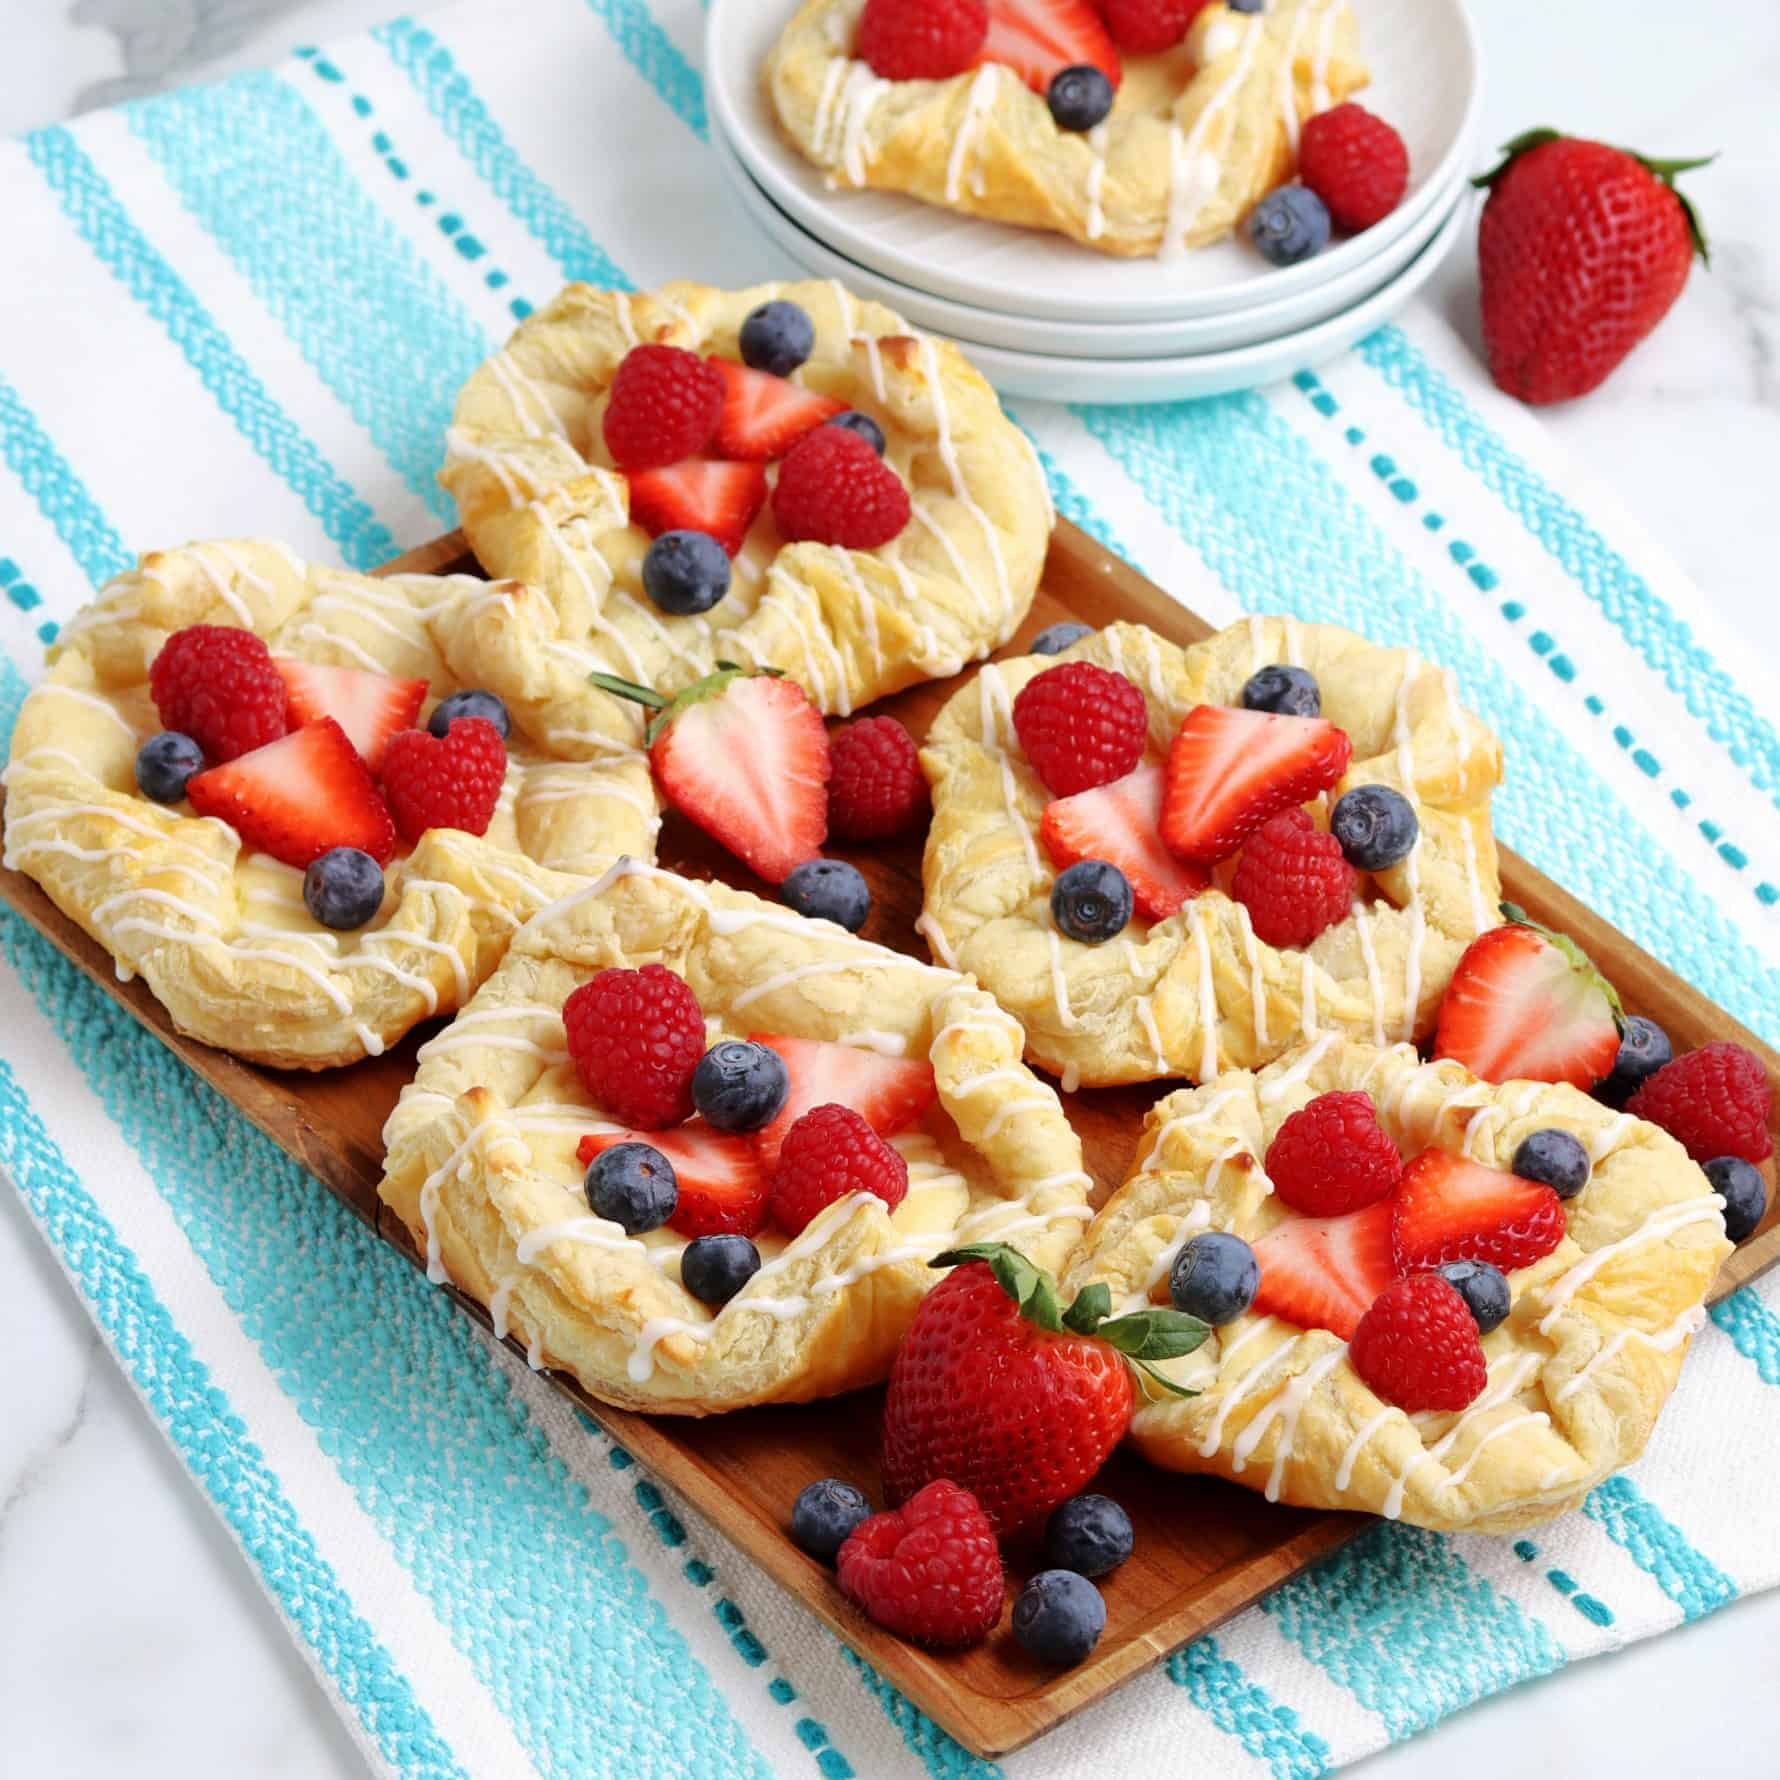 Angled wooden tray filled with berry topped pastries.